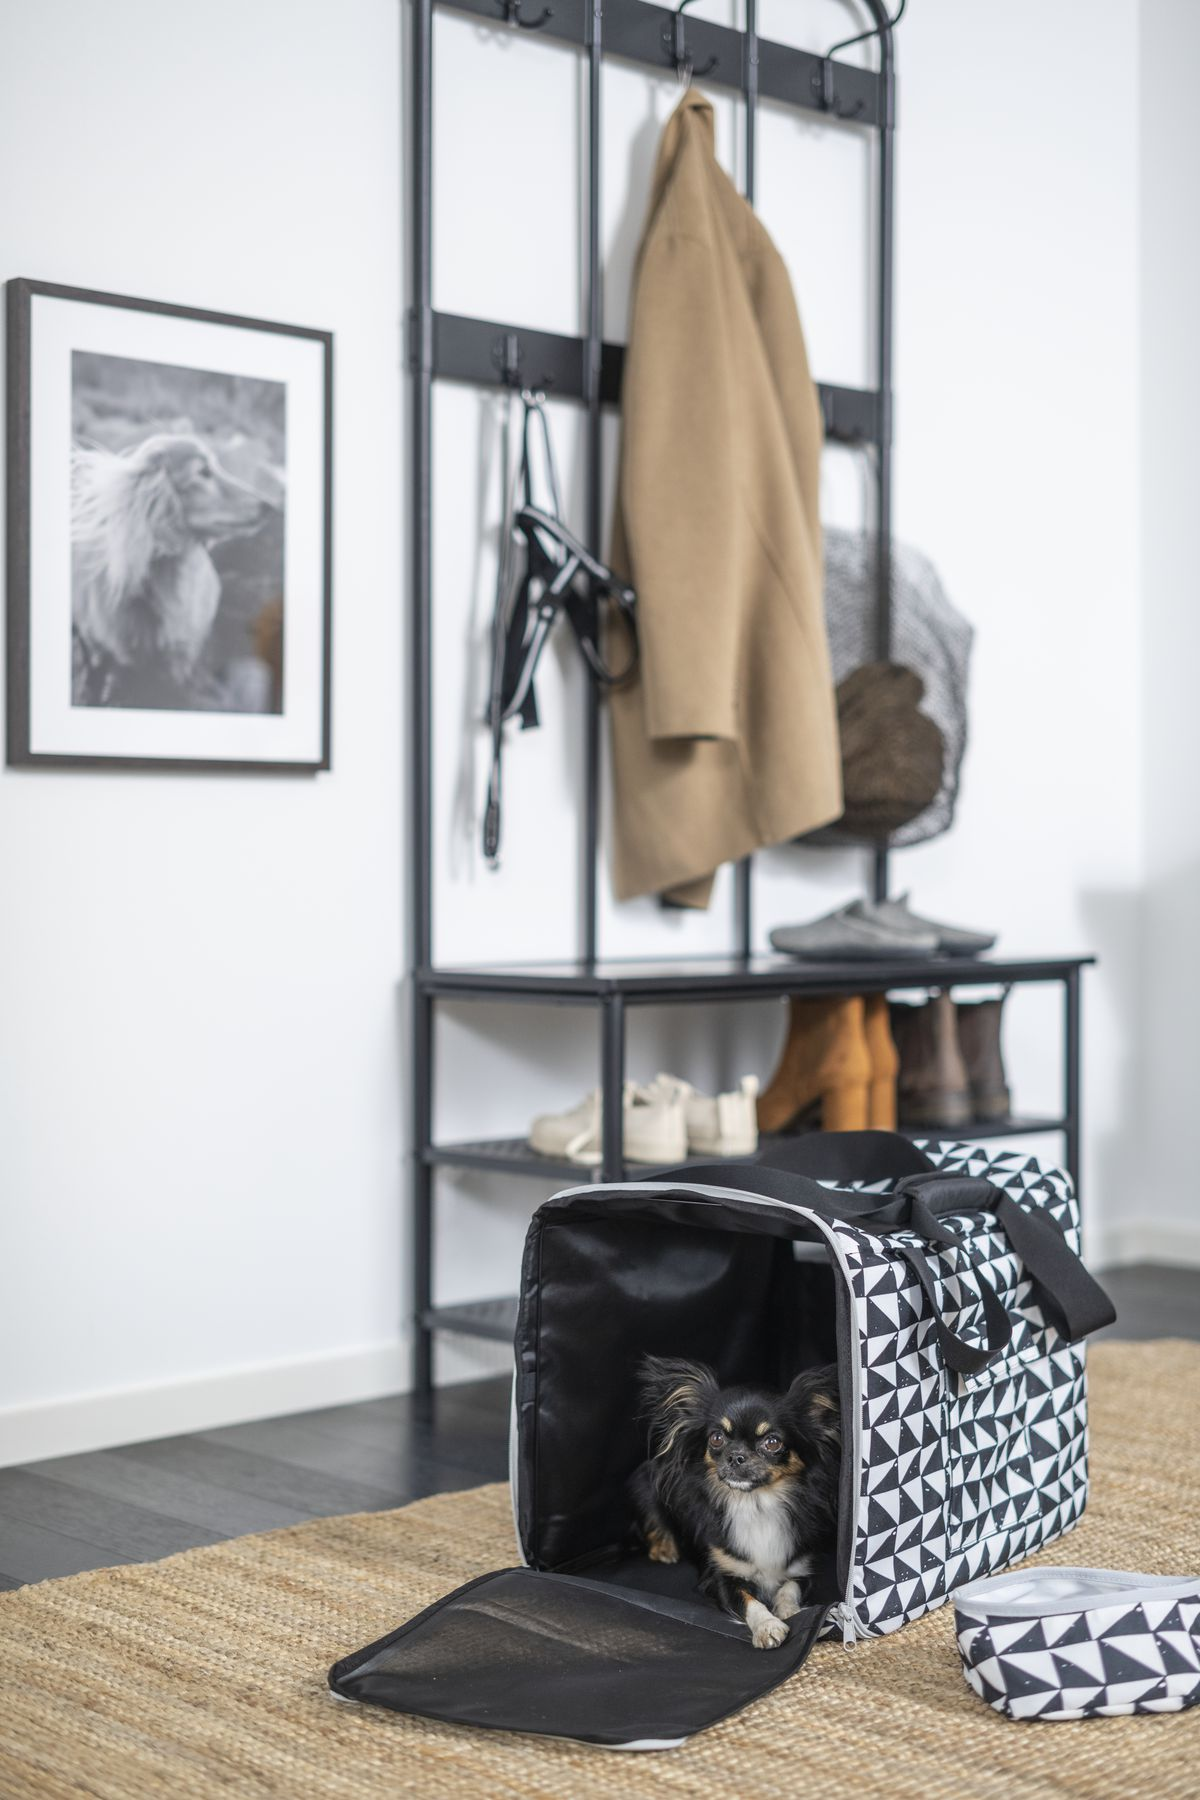 Dog inside a black-and-white patterned carrier.